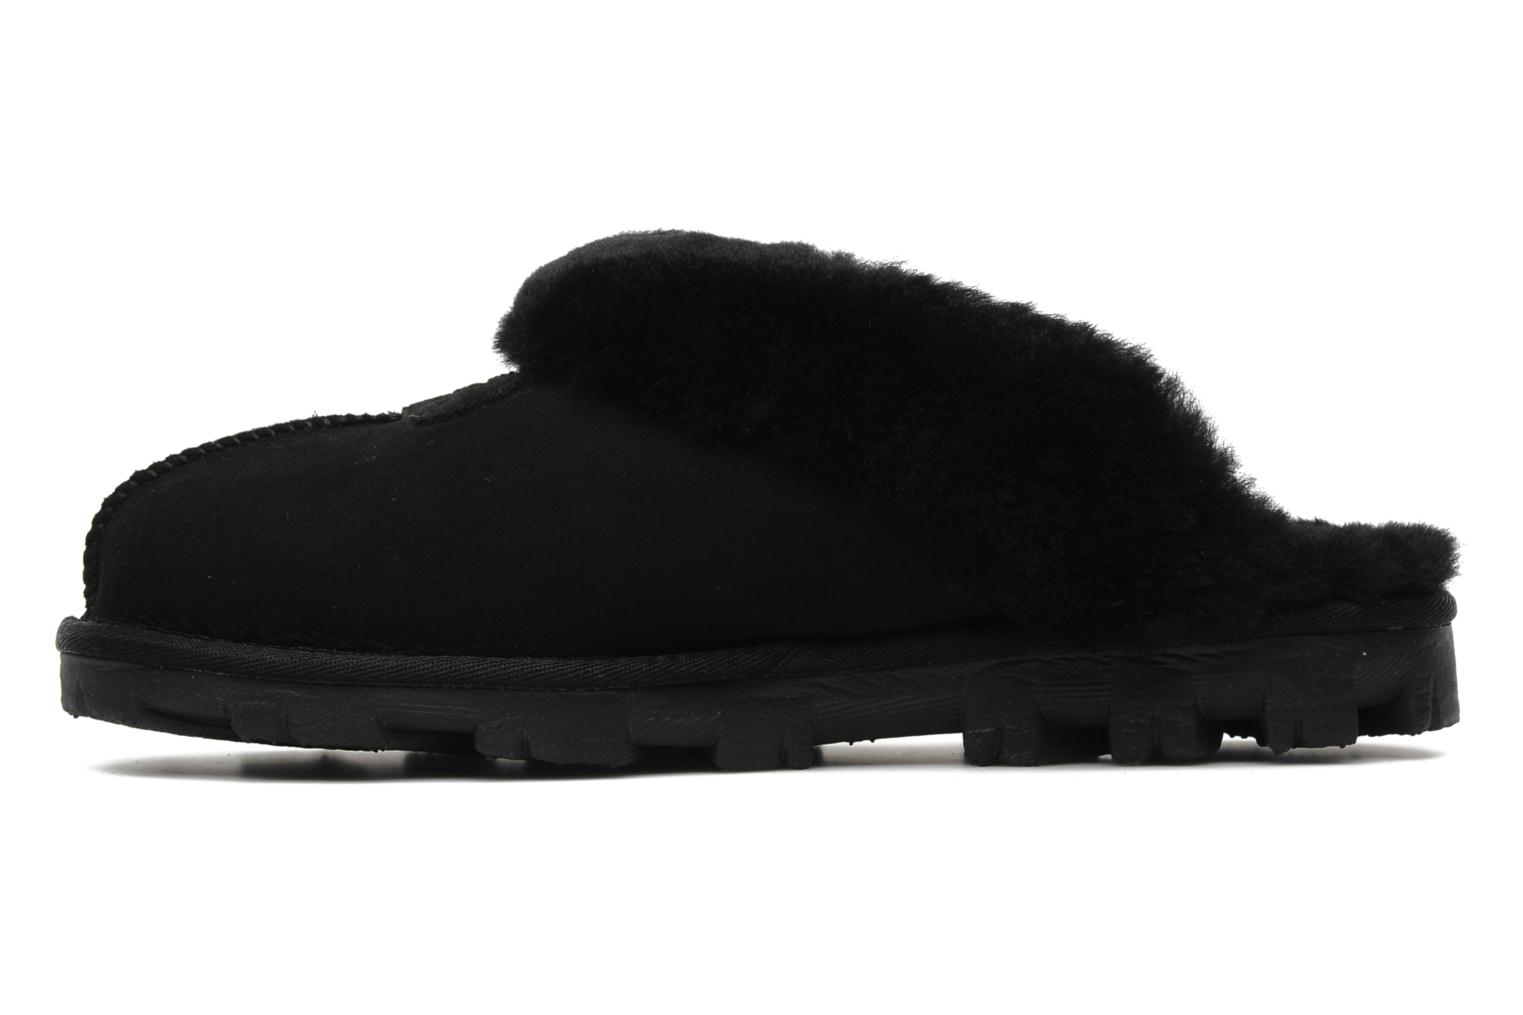 8a8c024c731c Discount Ugg Coquette Slippers - cheap watches mgc-gas.com